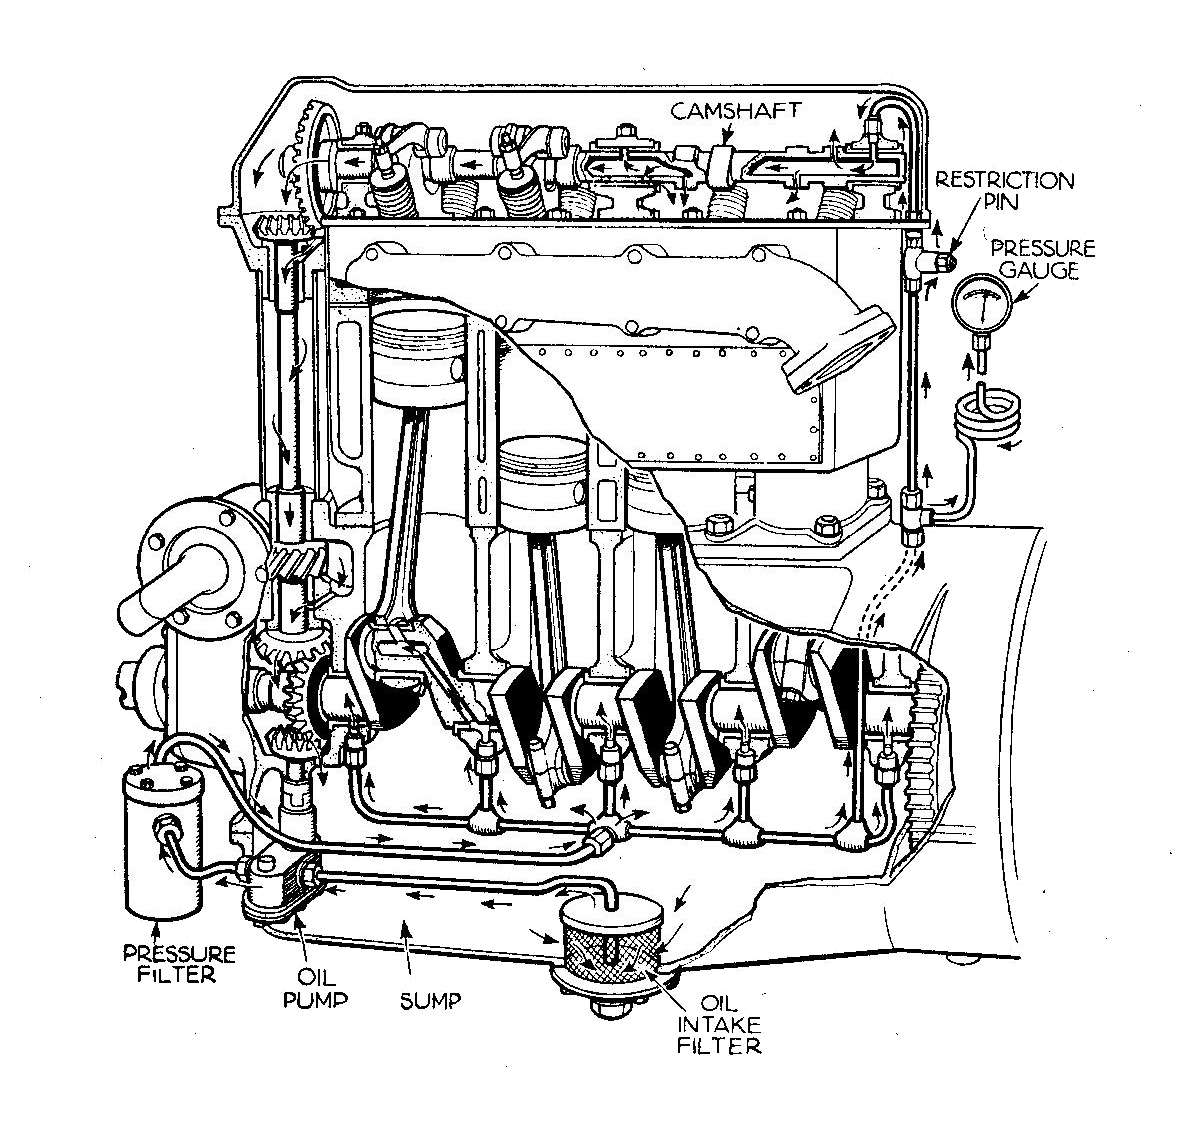 oil pump internal combustion engine wikipedia rh en wikipedia org 1994 Ford F-150 5.0 Engine Diagram 1995 Ford F-150 4 9 Engine Diagram